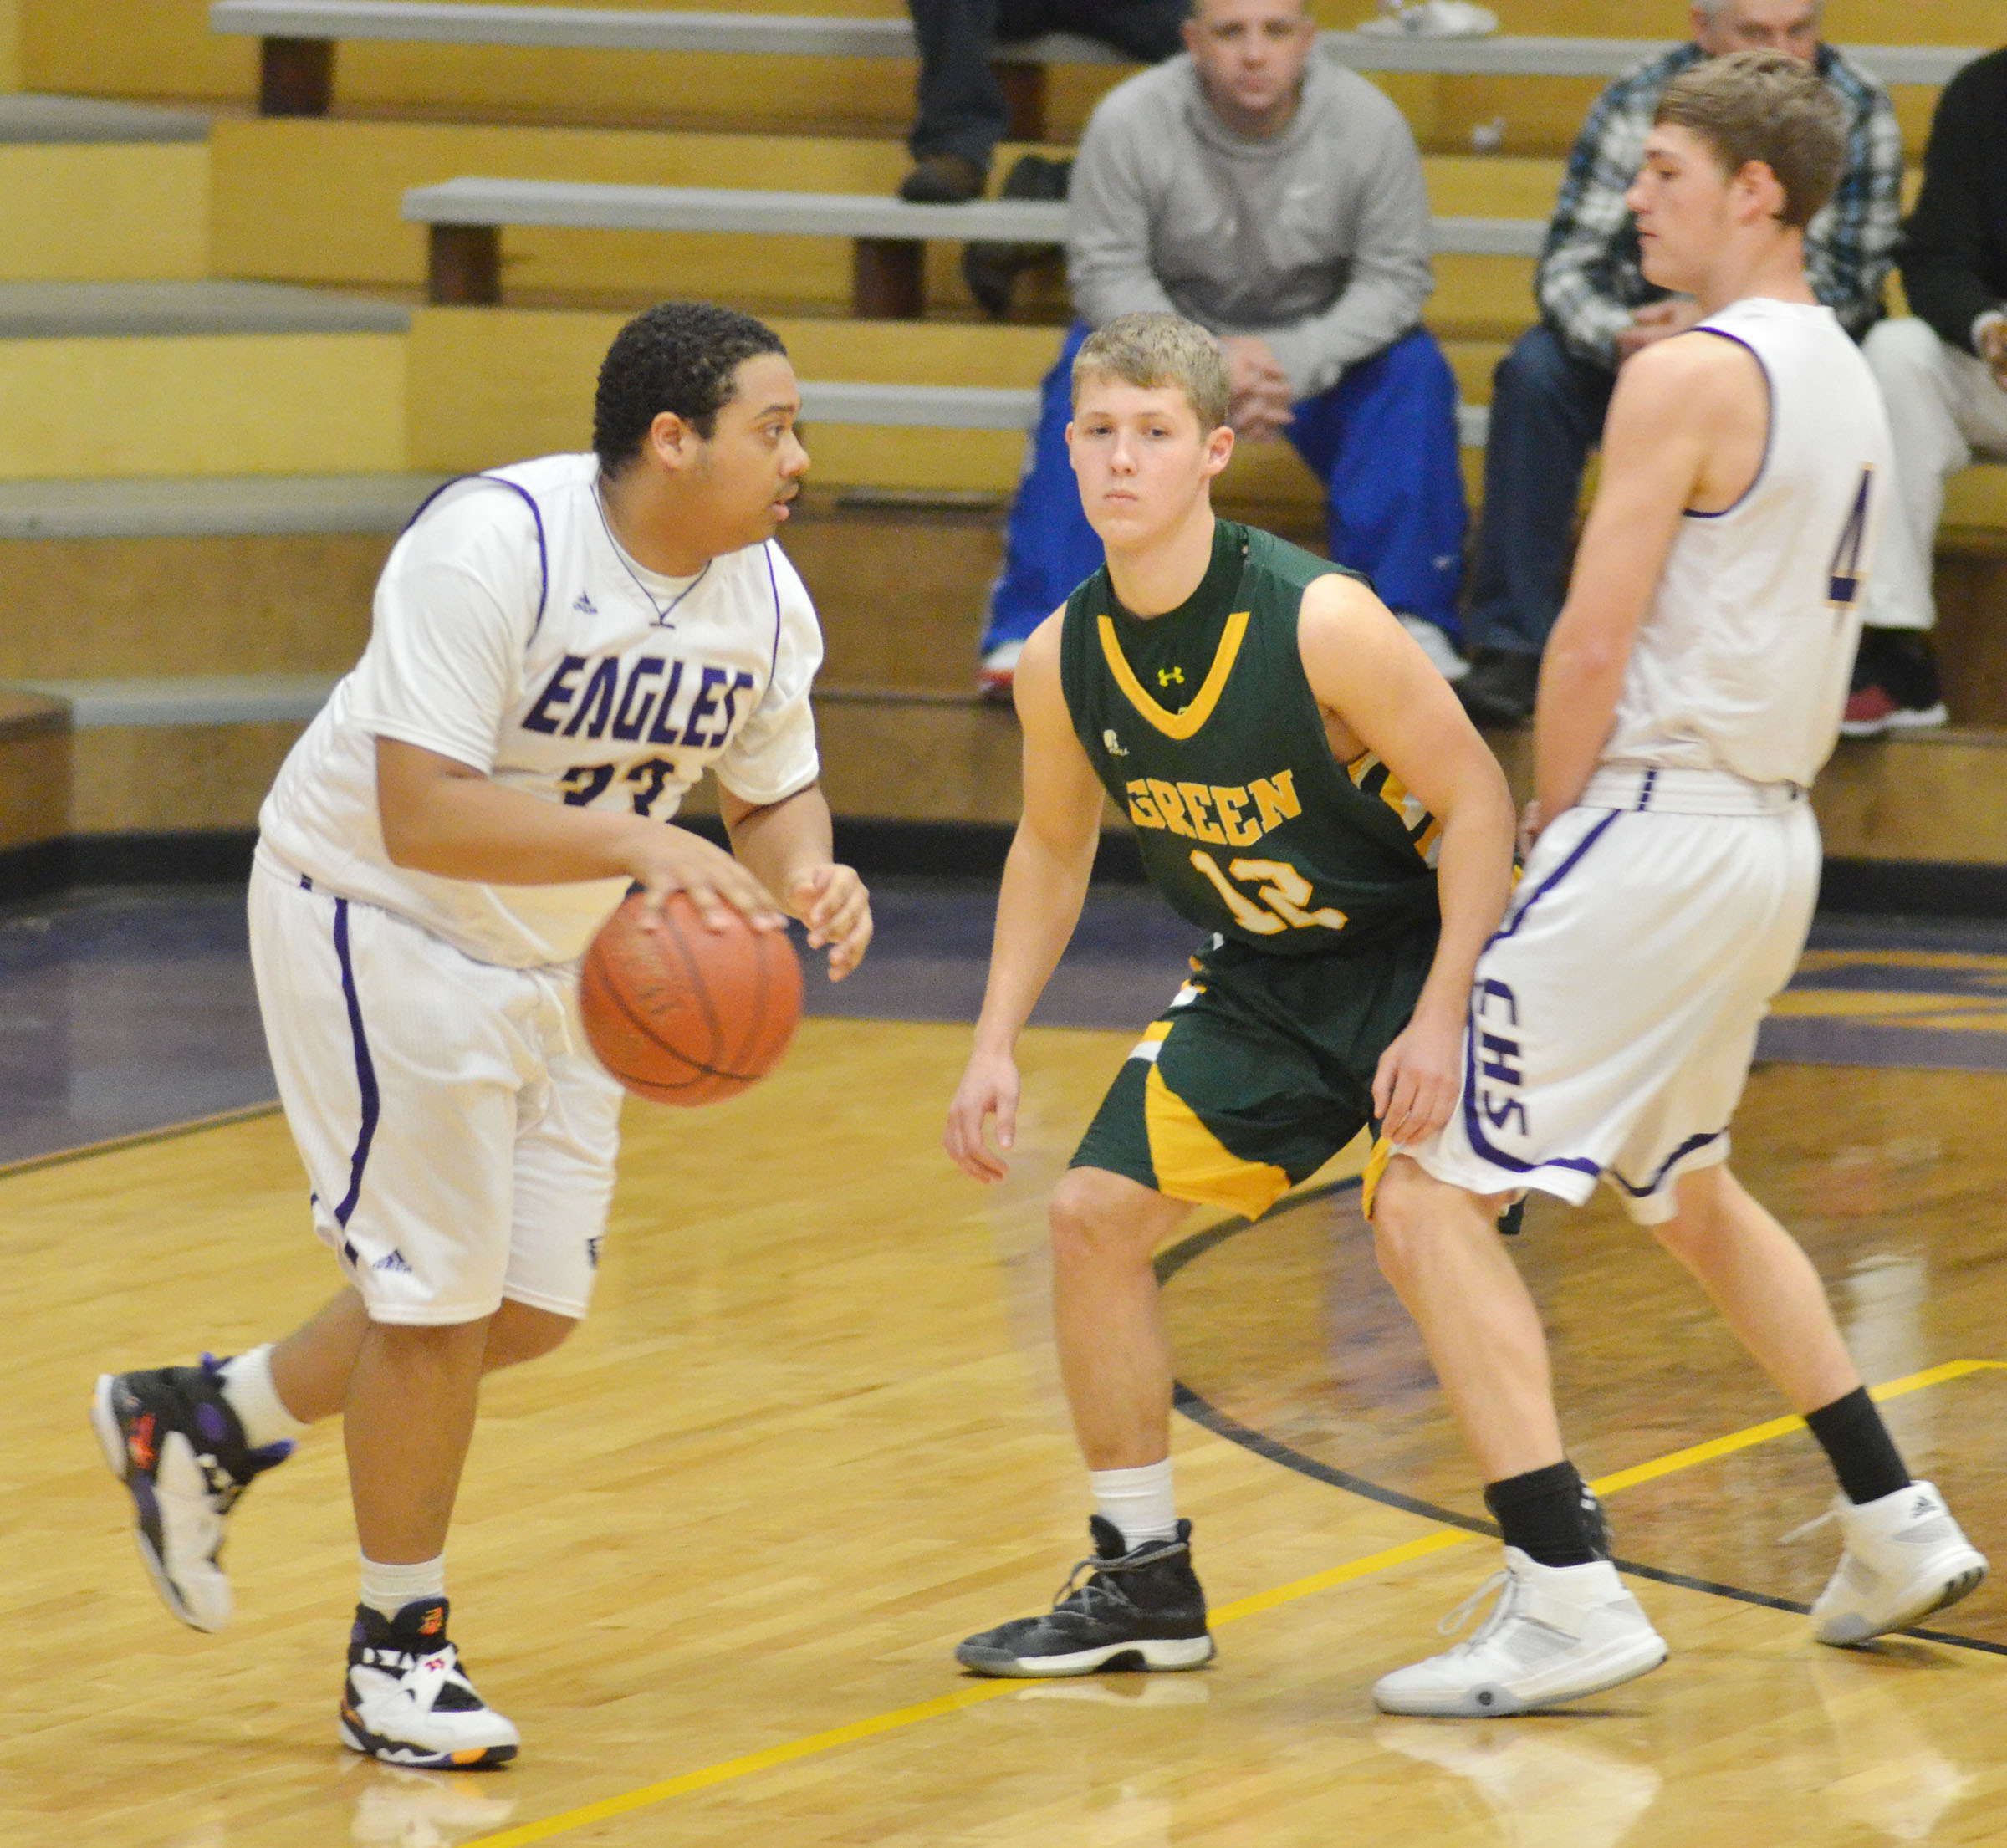 CHS senior Ricky Smith-Cecil dribbles to the basket as fellow senior Zack Bottoms plays defense.